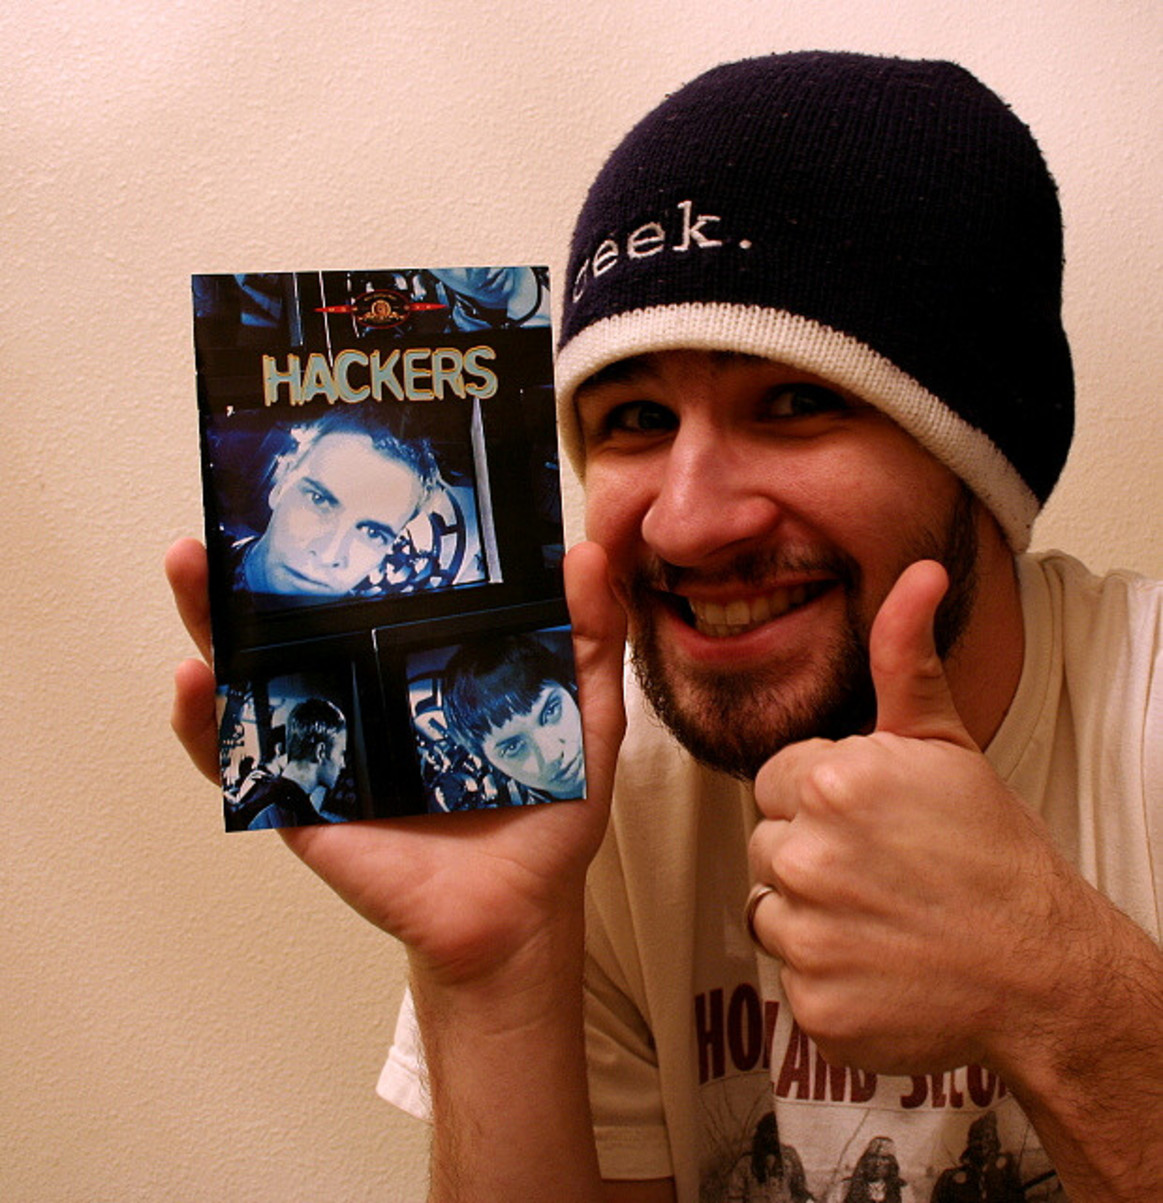 Computer hacking hackers crackers and phreakers